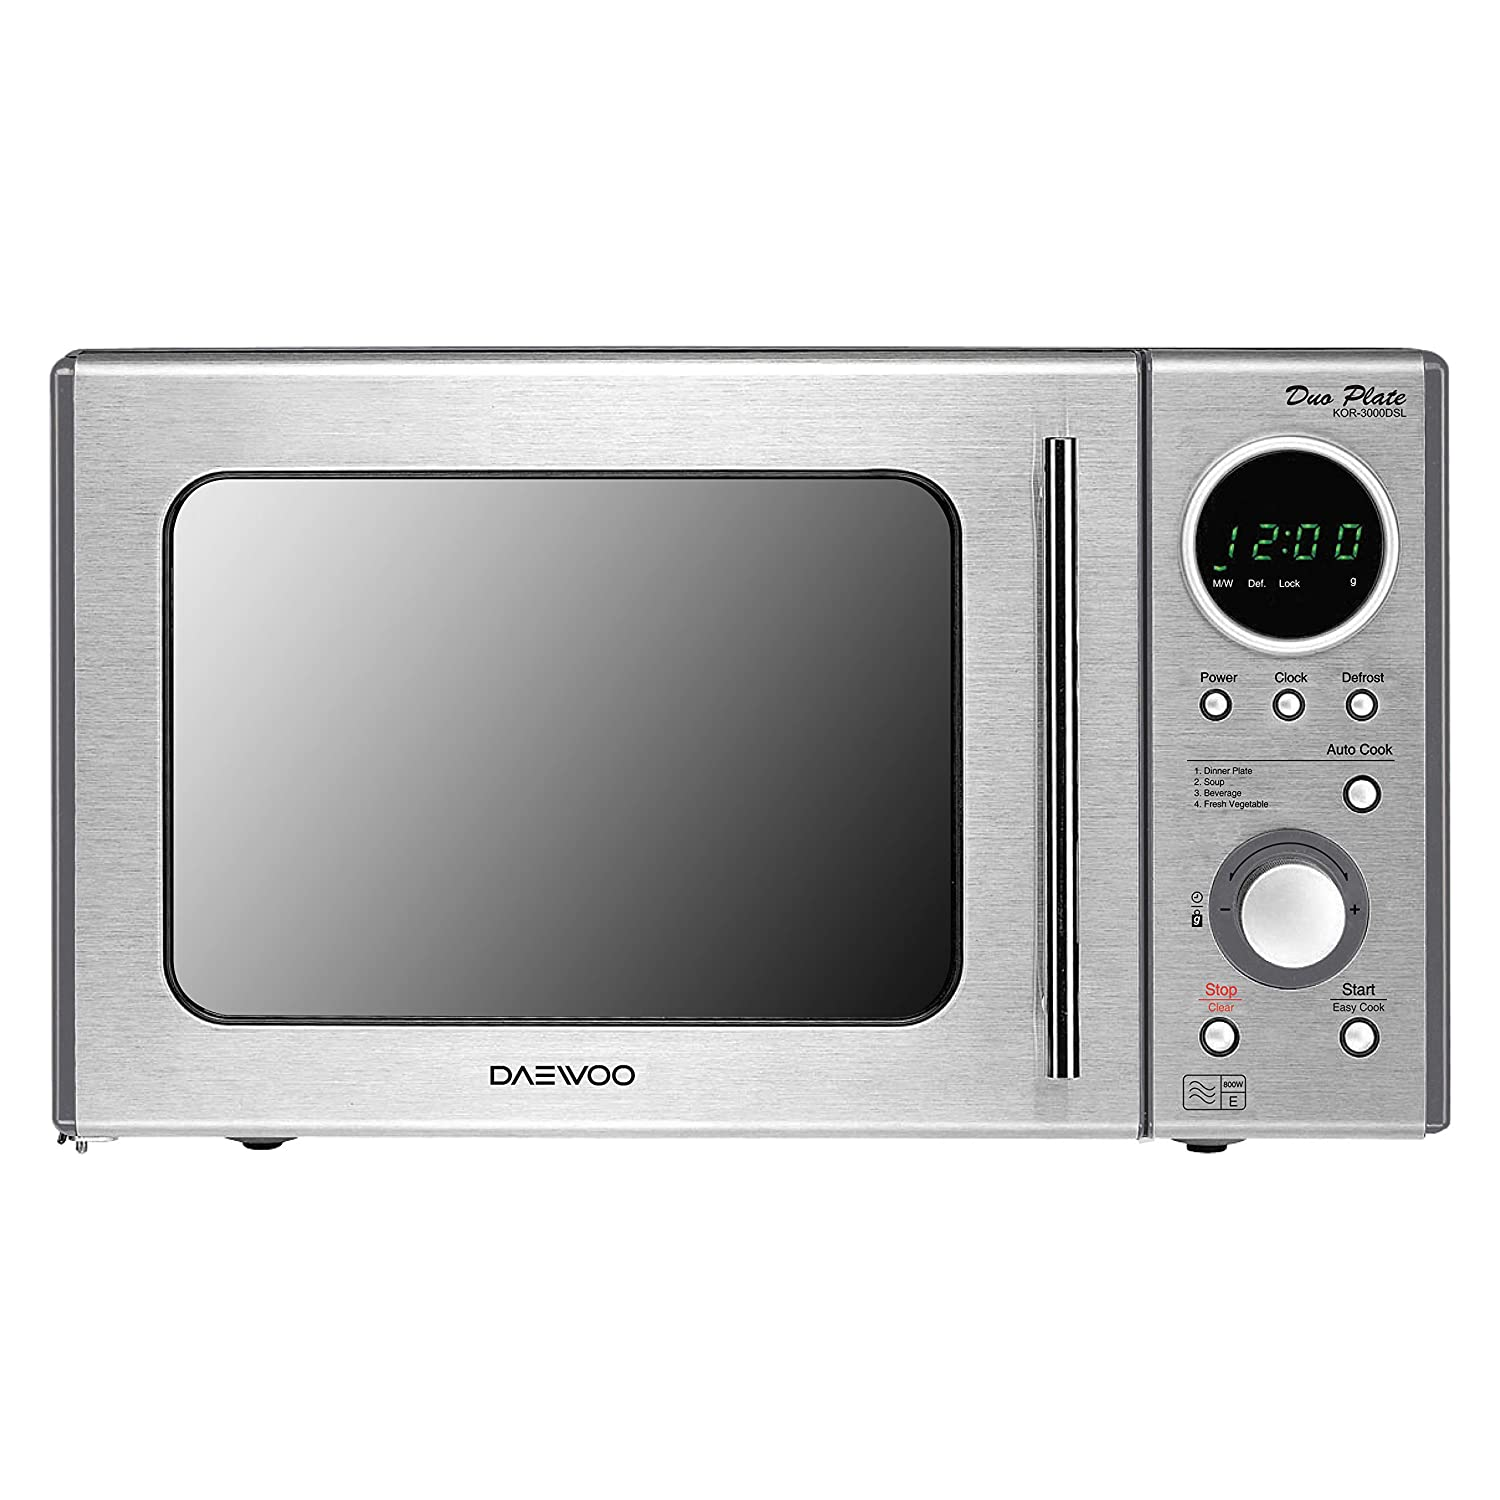 Daewoo KOR3000DSL Touch Control Solo Microwave Oven, 20 L, 800 W - Silver INM-DAEKOR3000DSL Microwave Ovens Small_Appliances